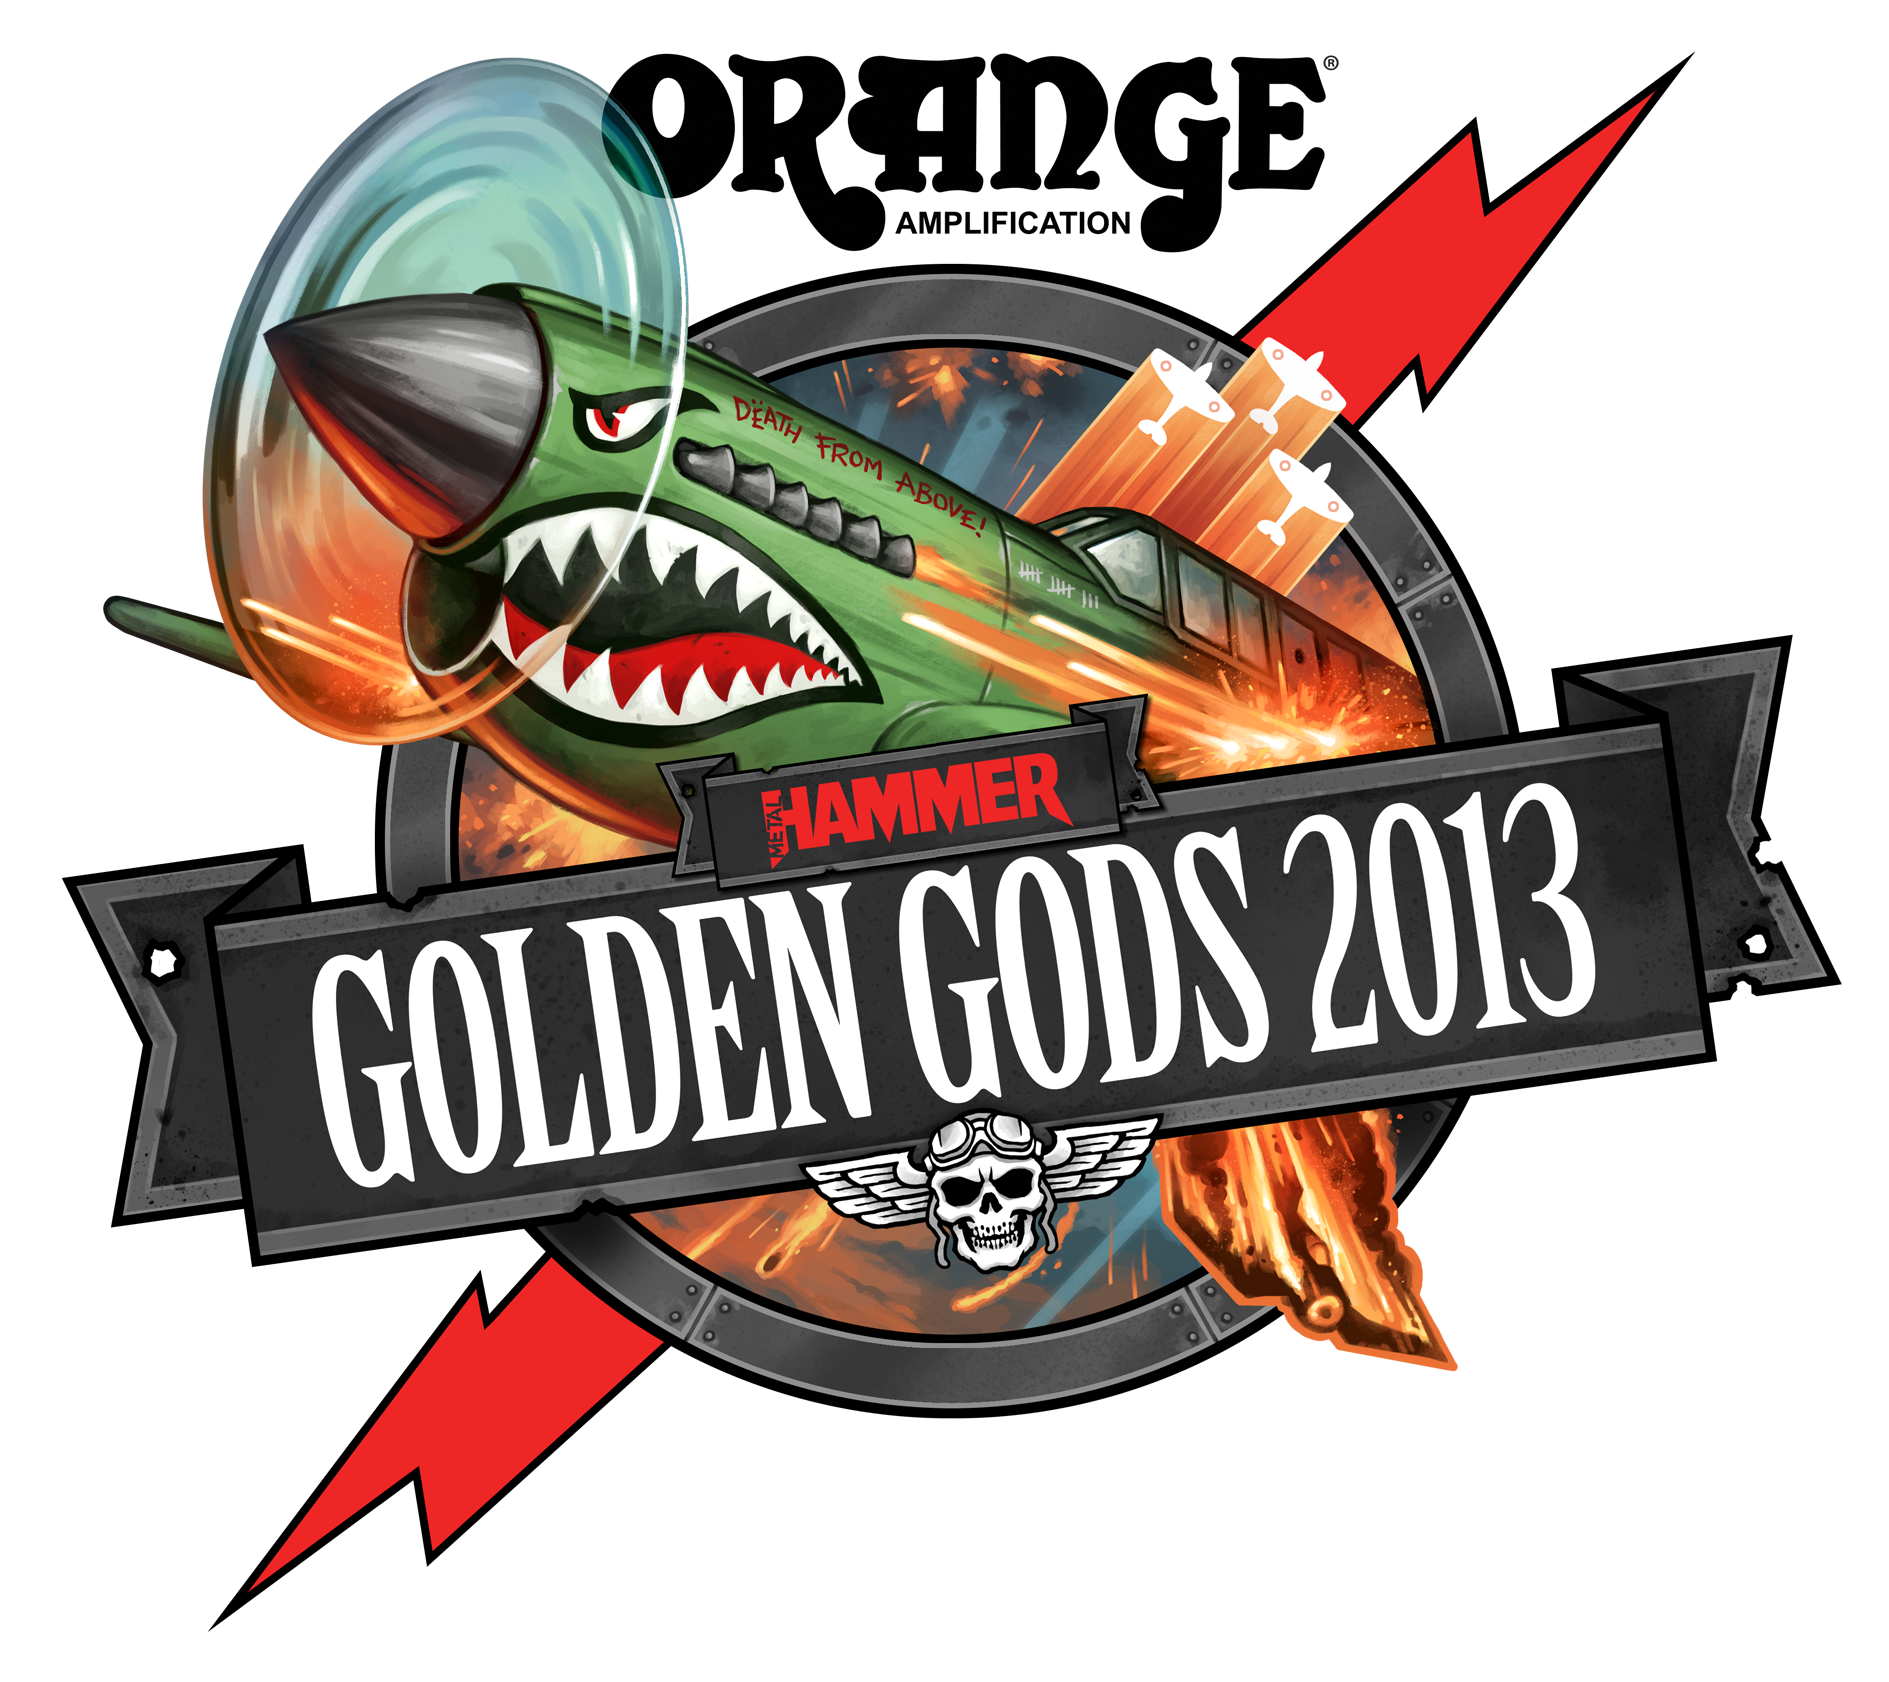 Metal Hammer Golden Gods 2013